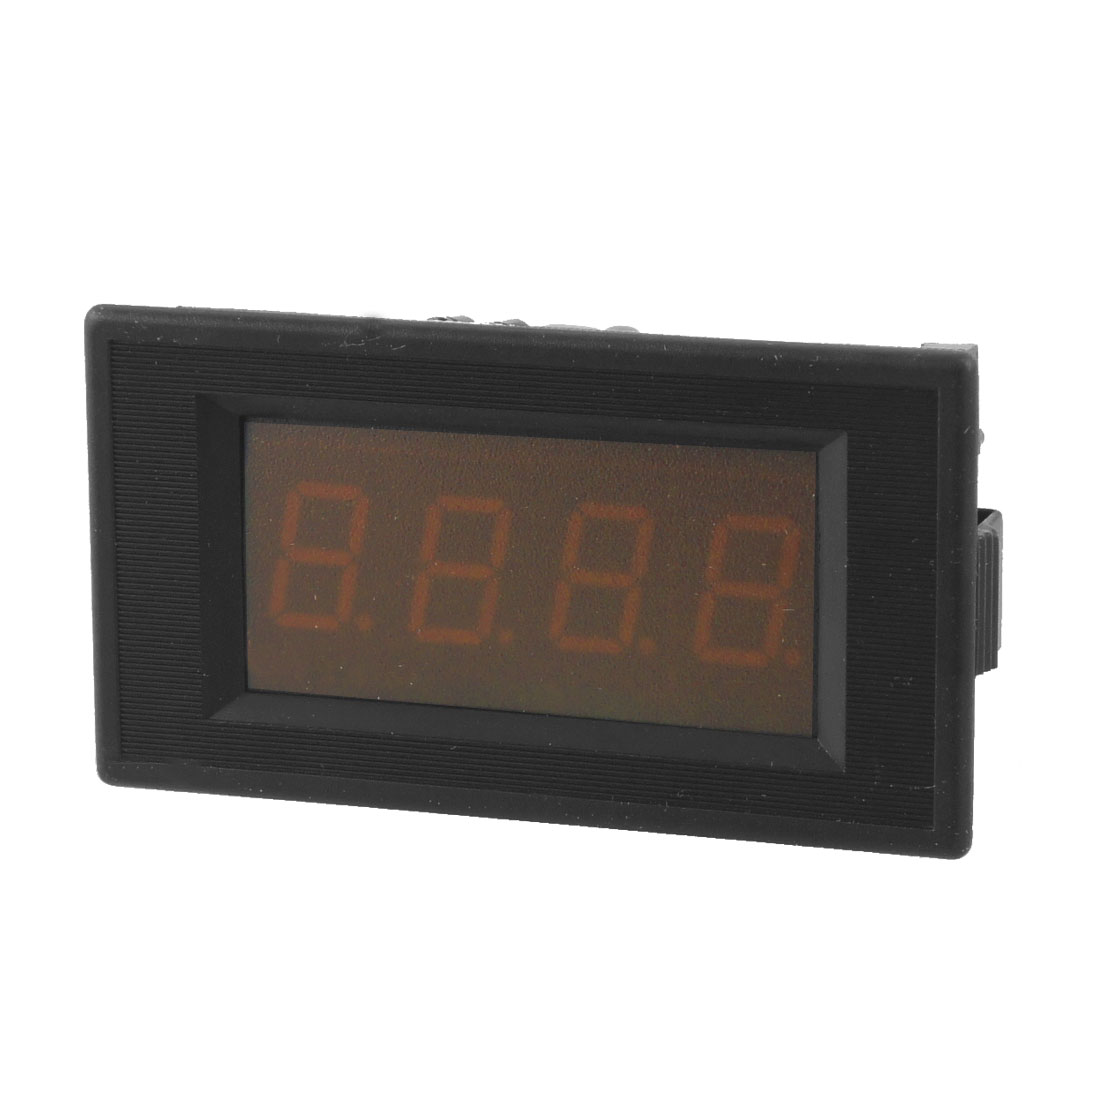 Red LED Digital Display DC 0-200V Voltage Test Panel Voltmeter